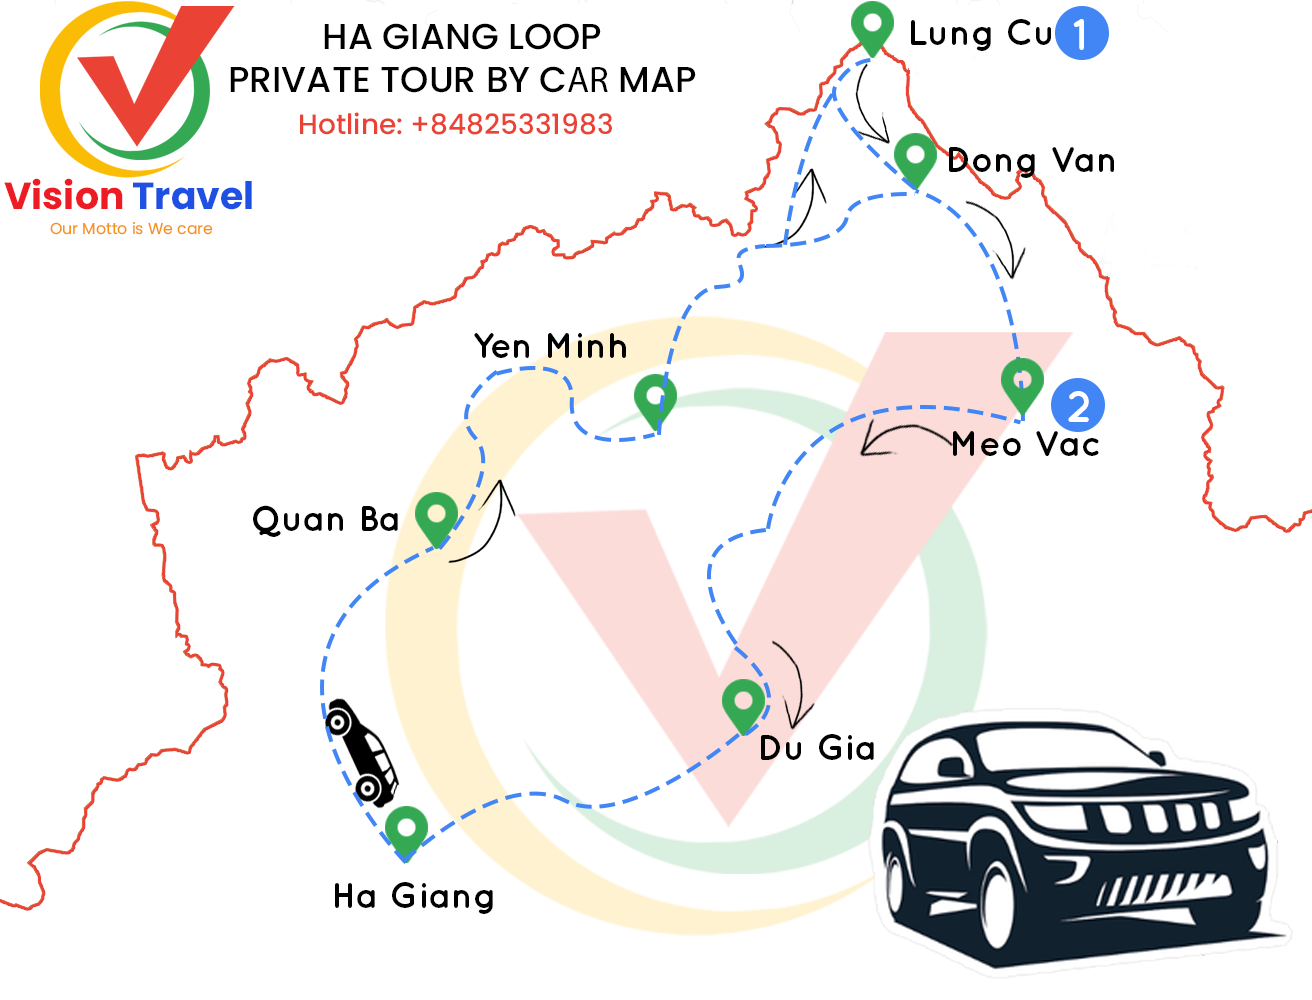 Travel map: Great 3-day Ha Giang Loop Car Tour